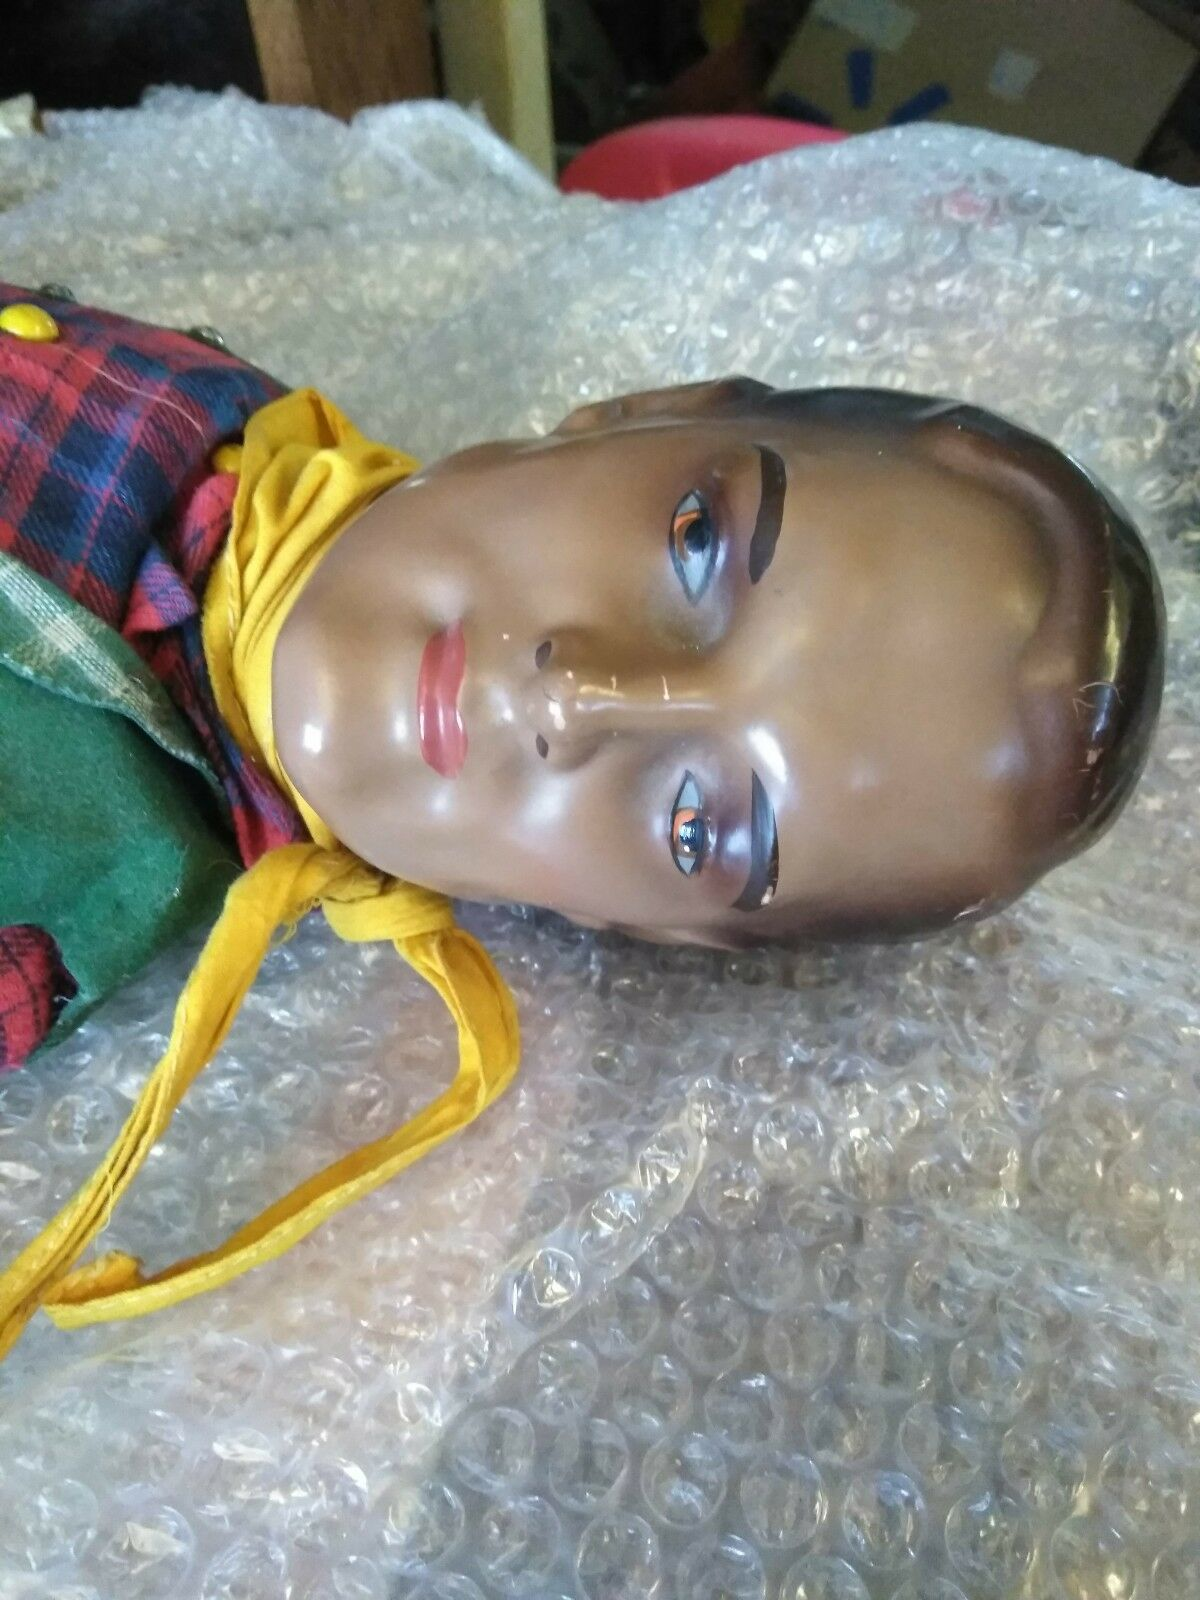 ANTIQUE LONE RANGER DOLL,1930, EXTREMELY RARE-- 25